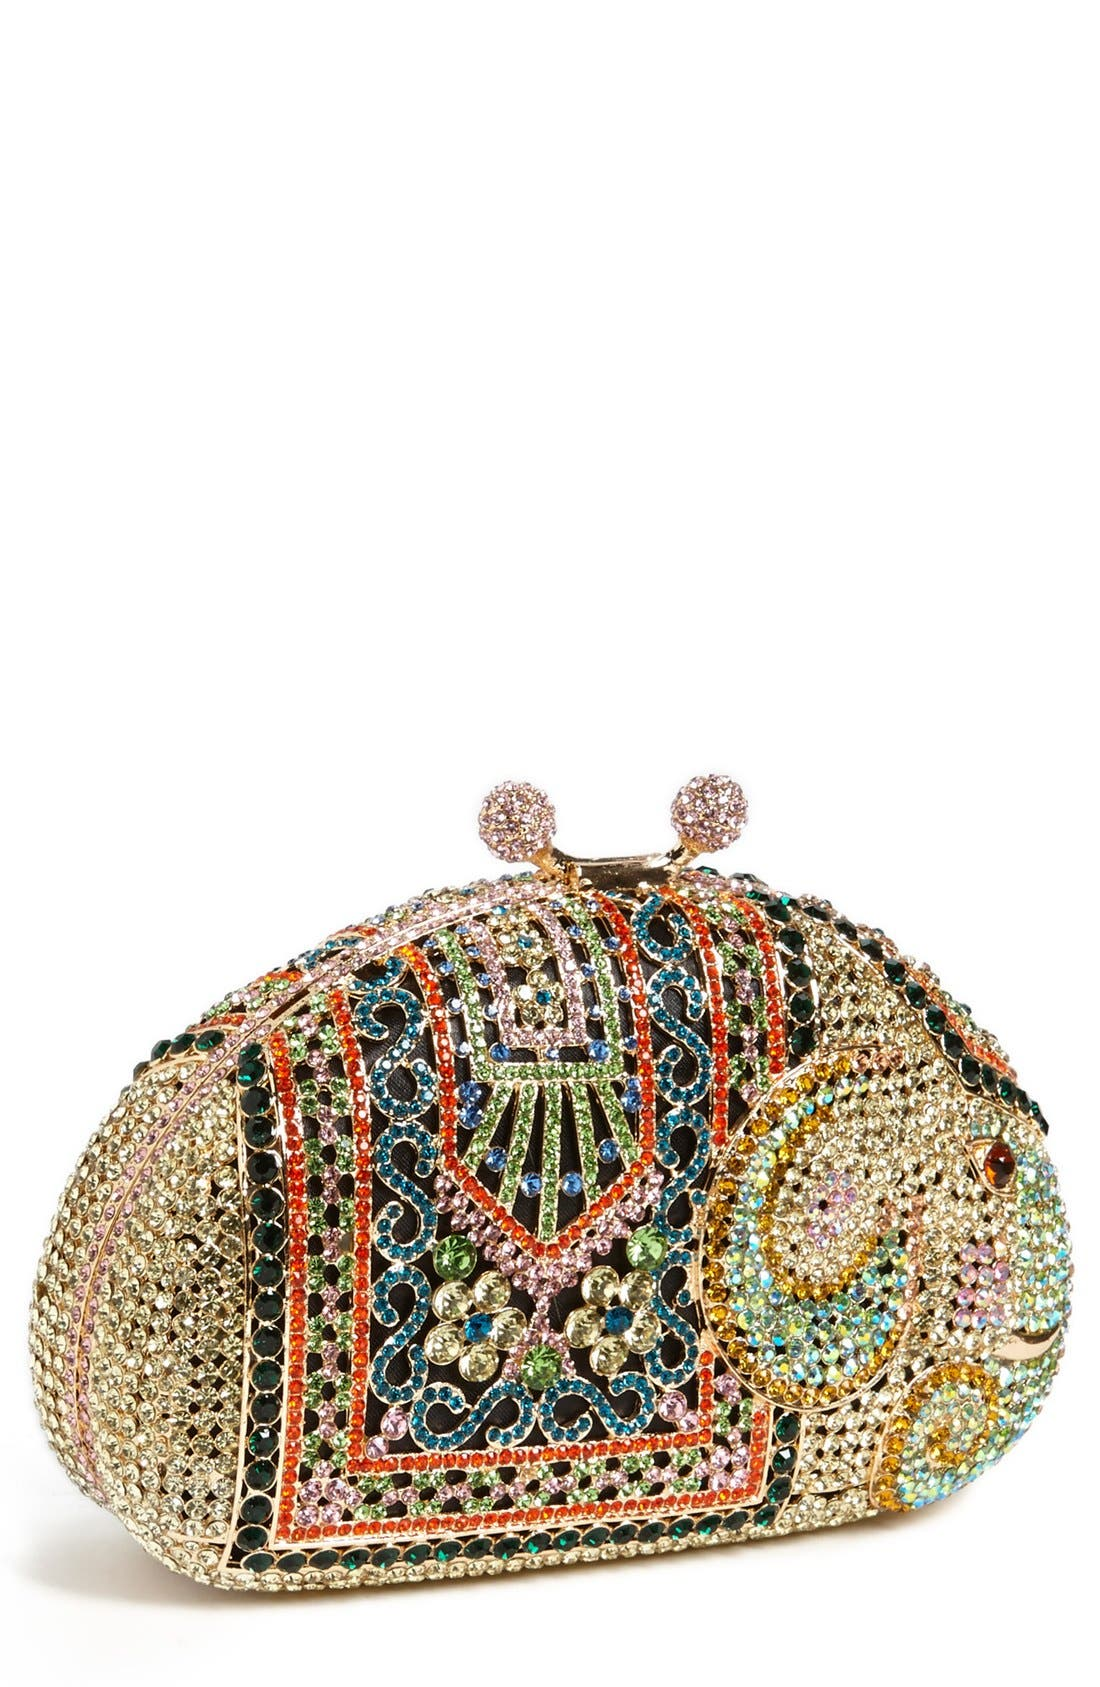 Main Image - Natasha Couture 'Elephant' Clutch